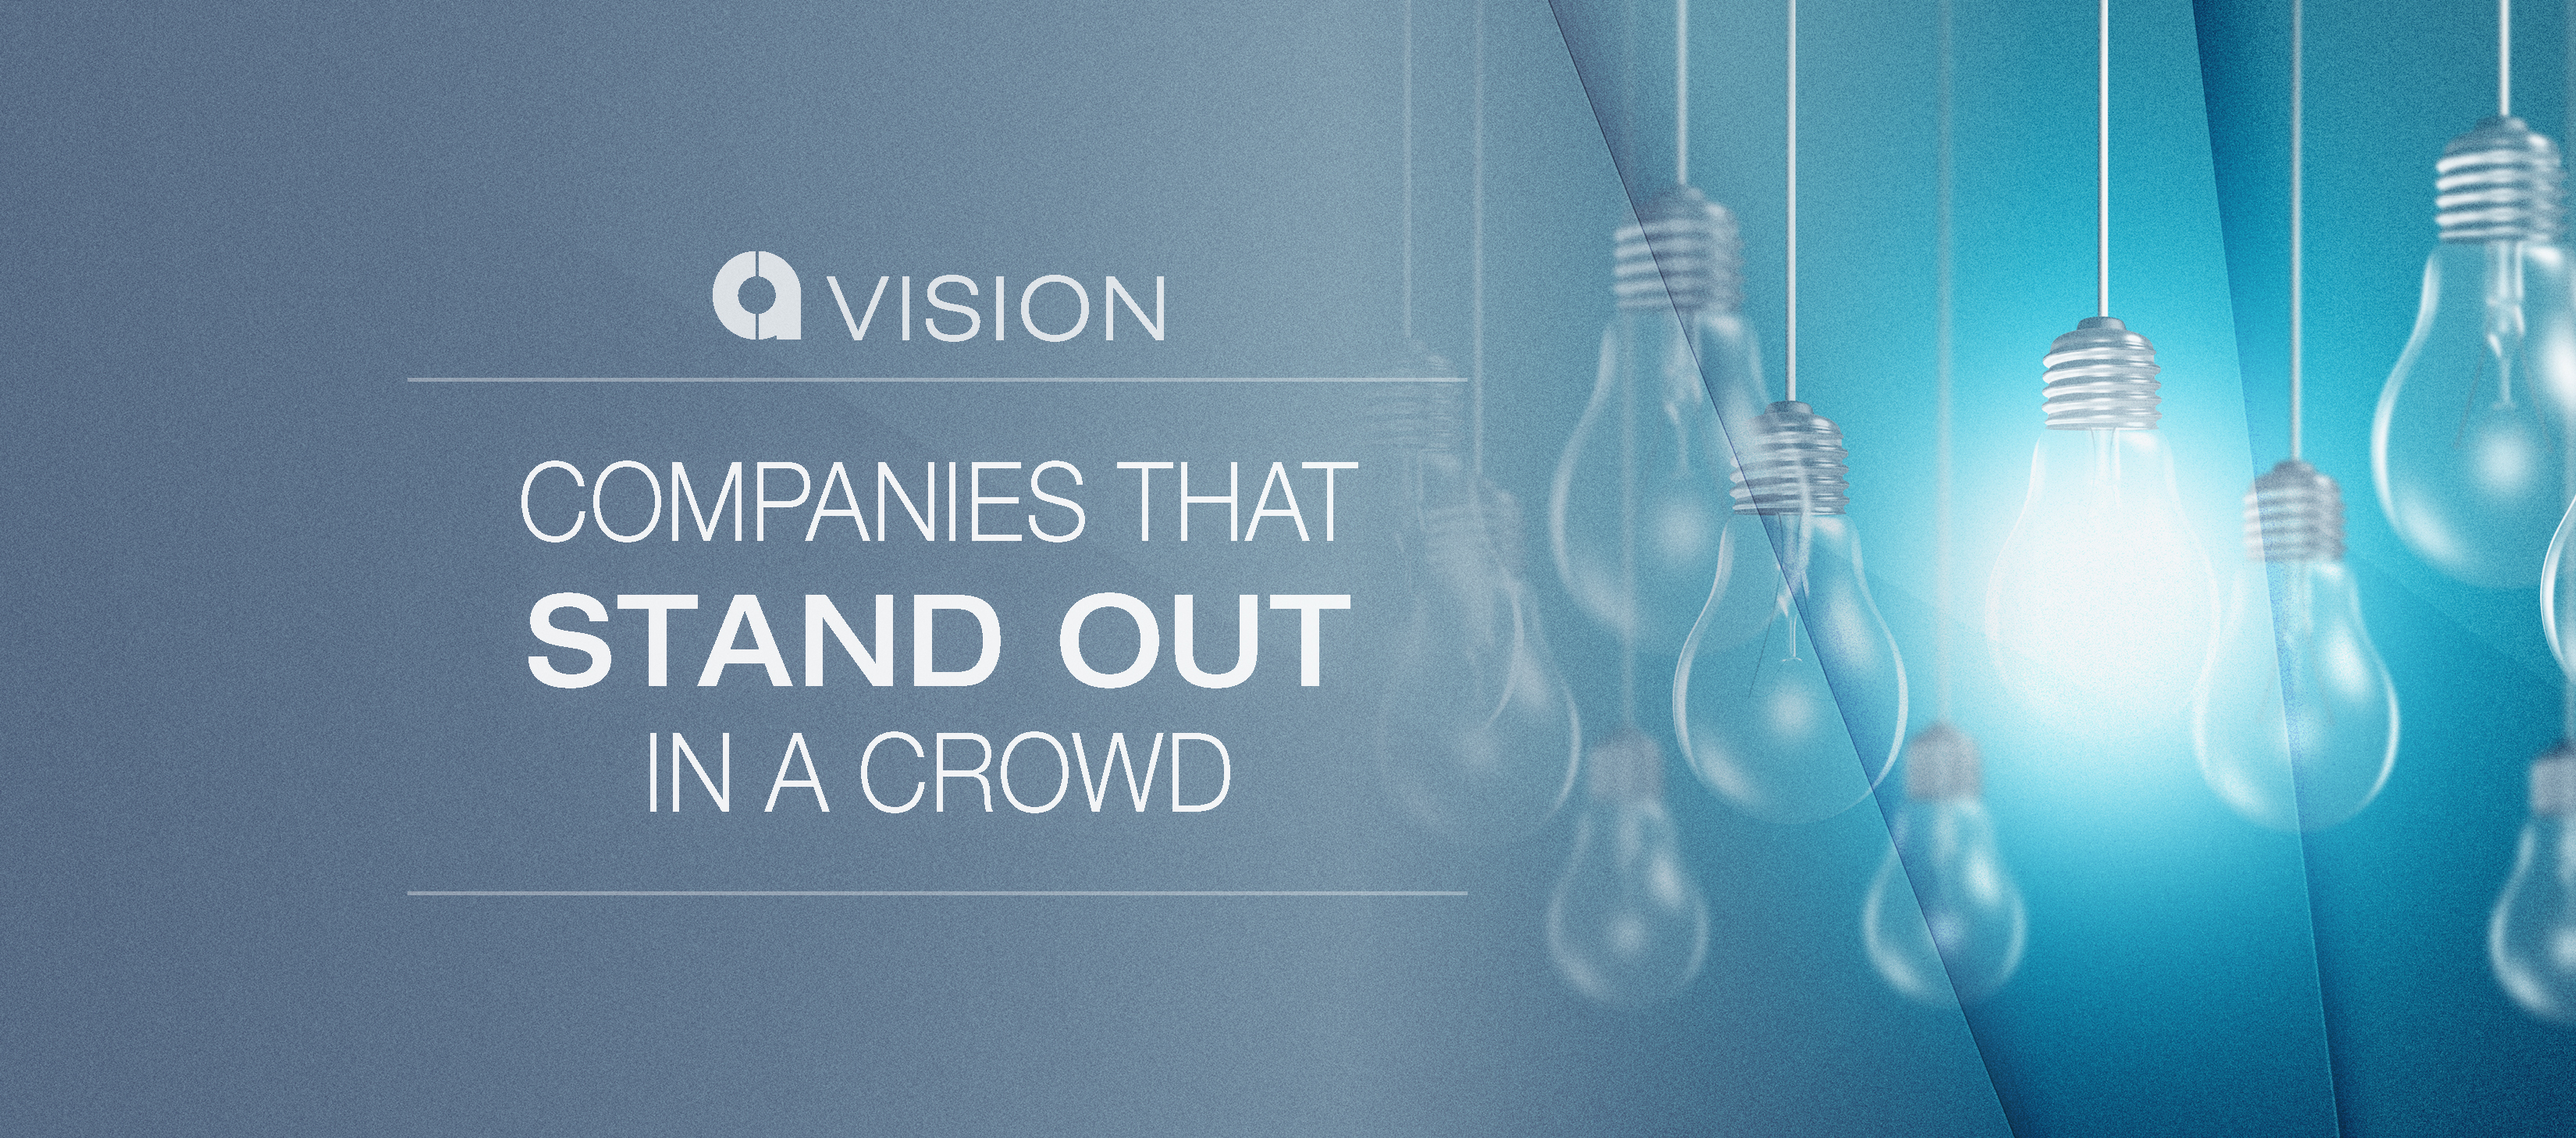 Stand Out Designs : Top 10 companies that stand out in a crowd the cirlot agency